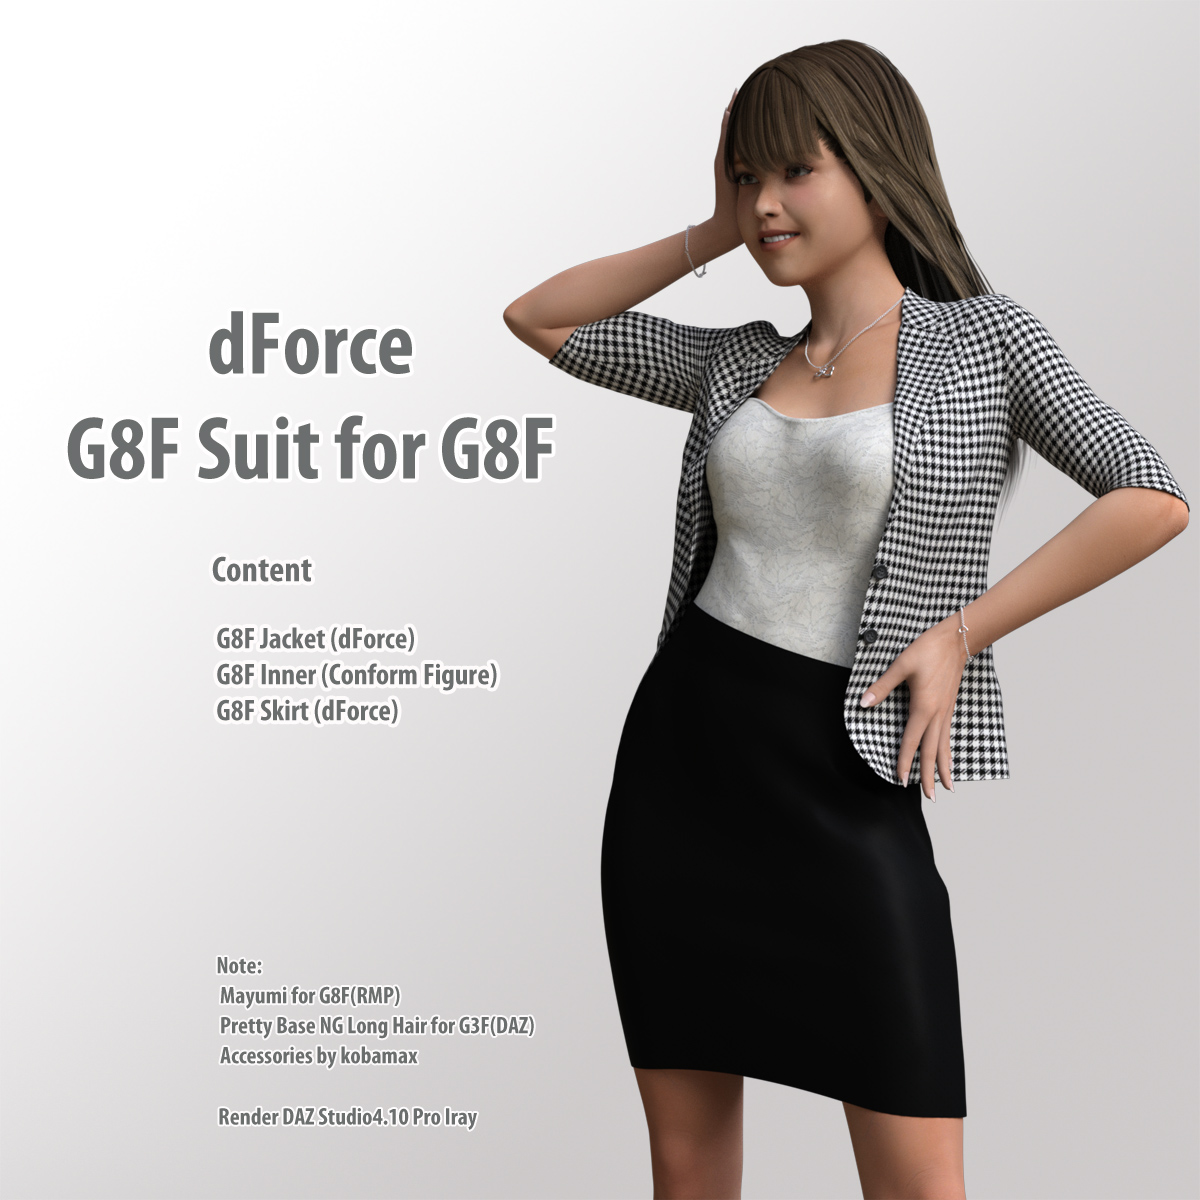 dForce G8F Suit for G8F